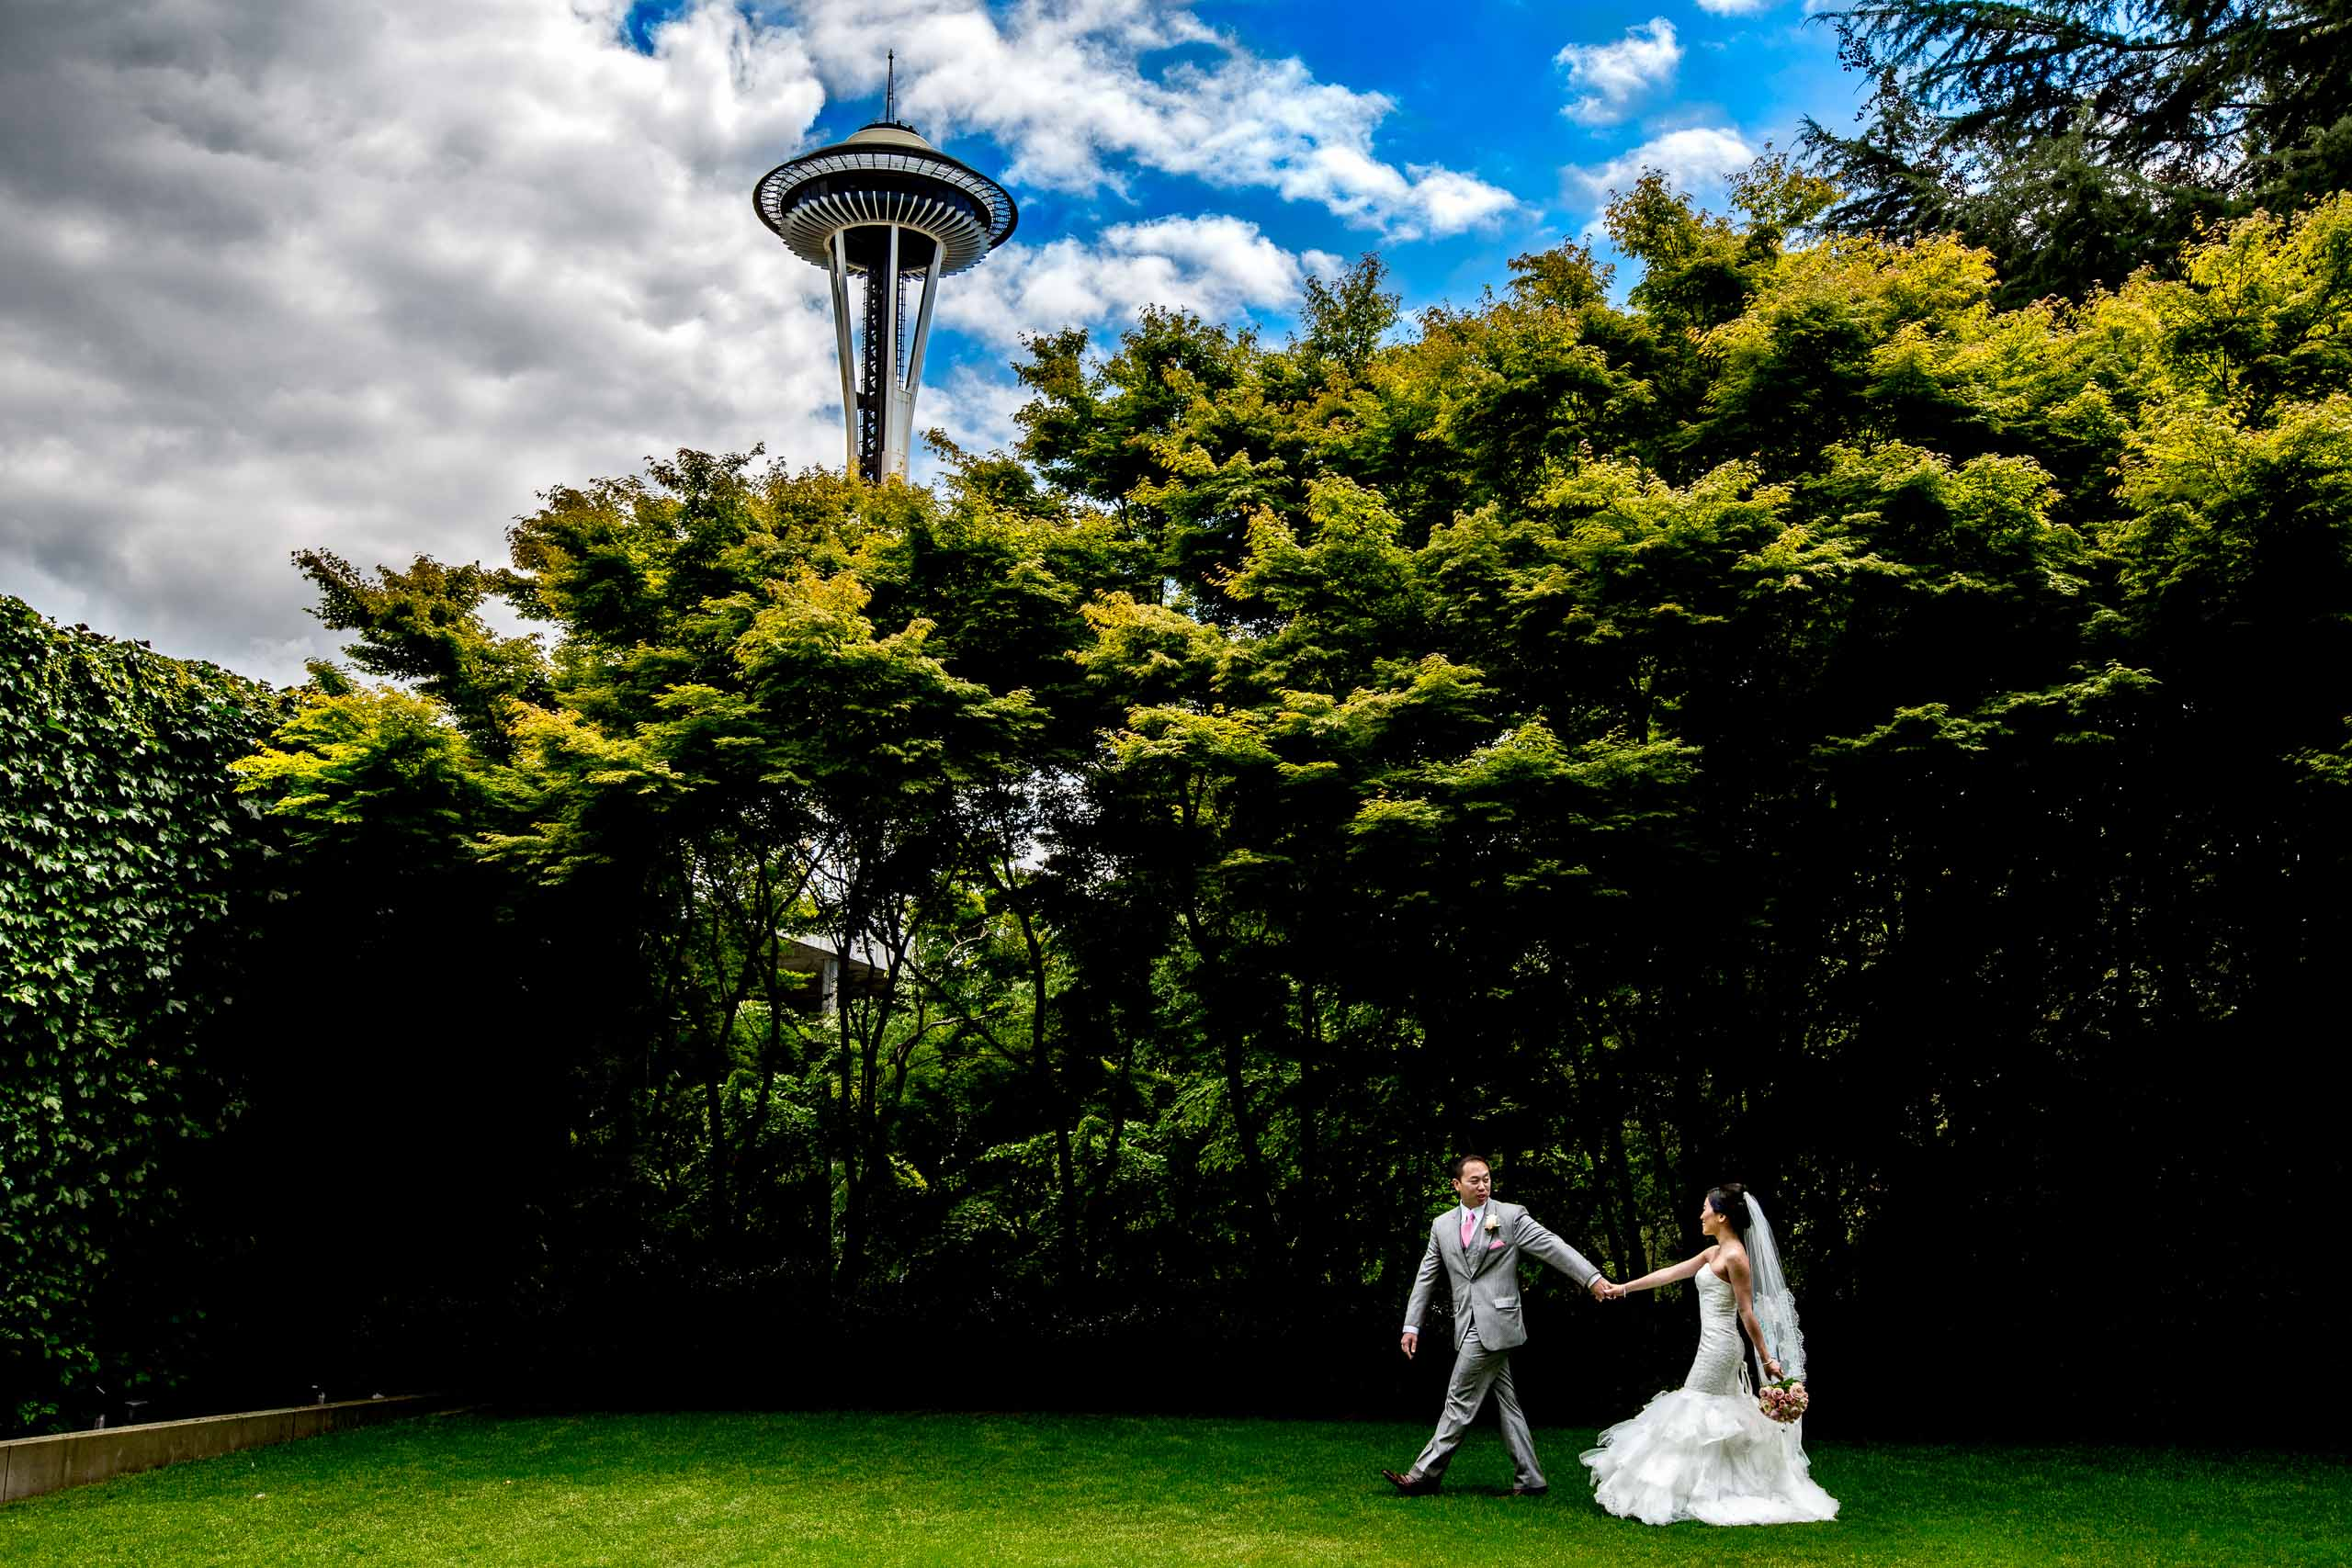 Portrait of a bride and groom with the Space Needle in the background before their Saltys wedding in Seattle, Washington.